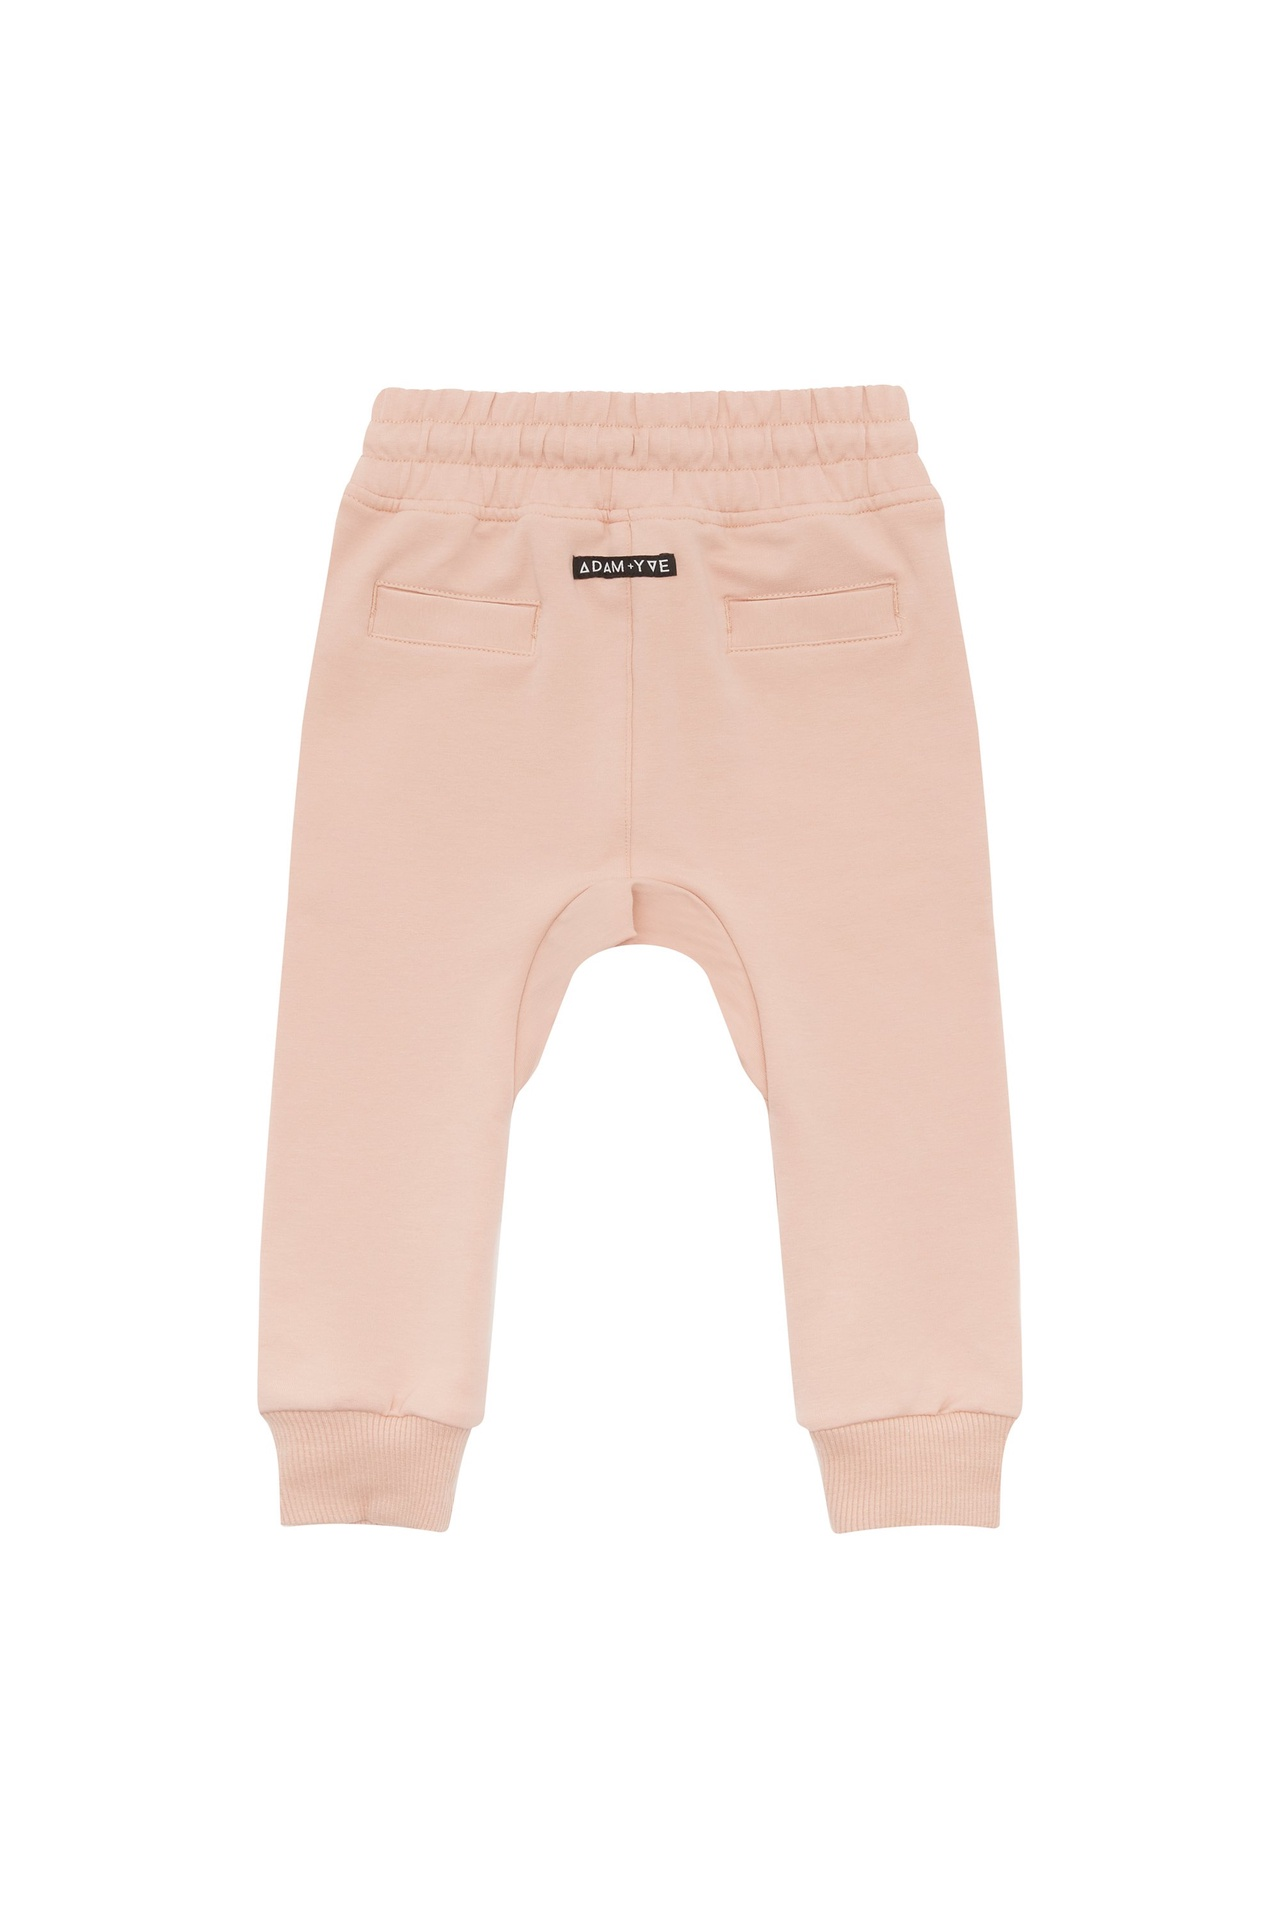 Adam and Yve Dusty Pink Jogger Pant